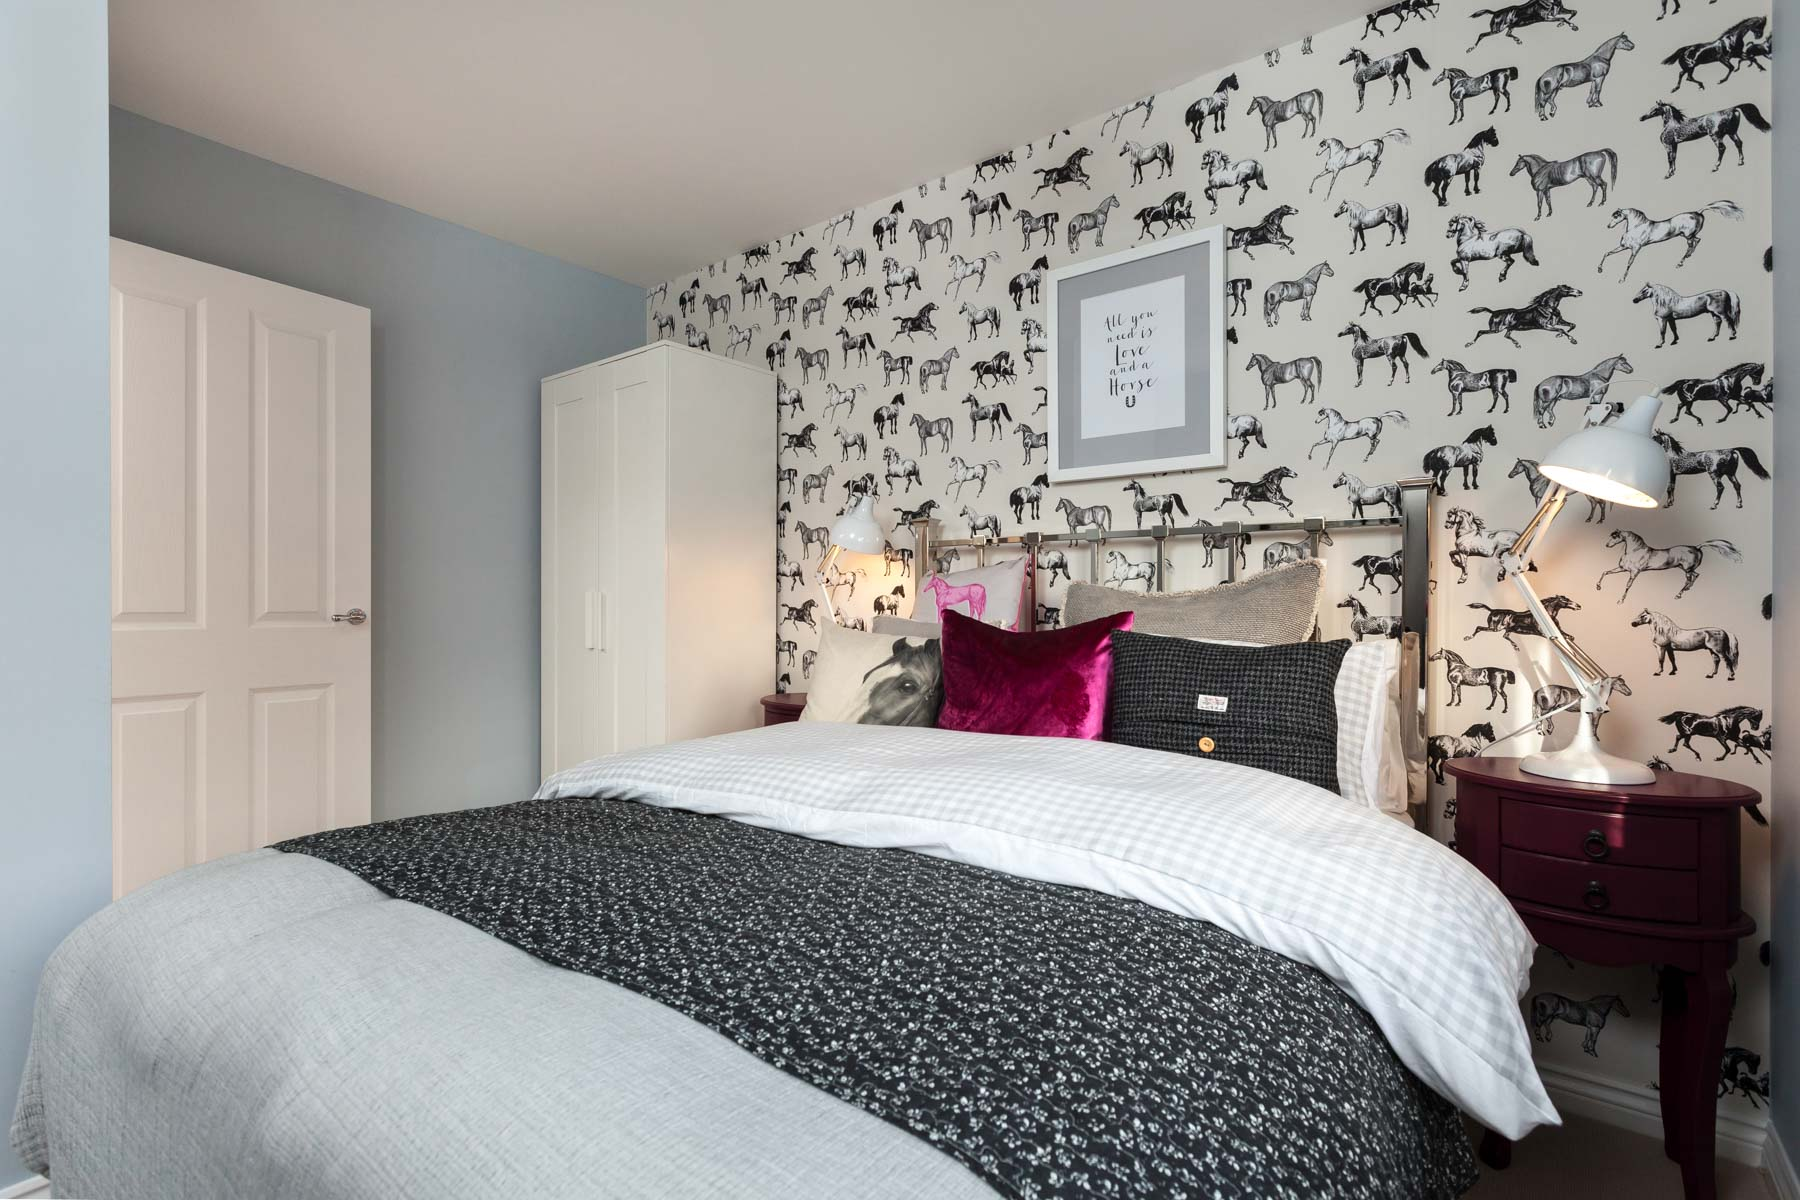 TW Exeter - Sherford - The Fir example bedroom 3